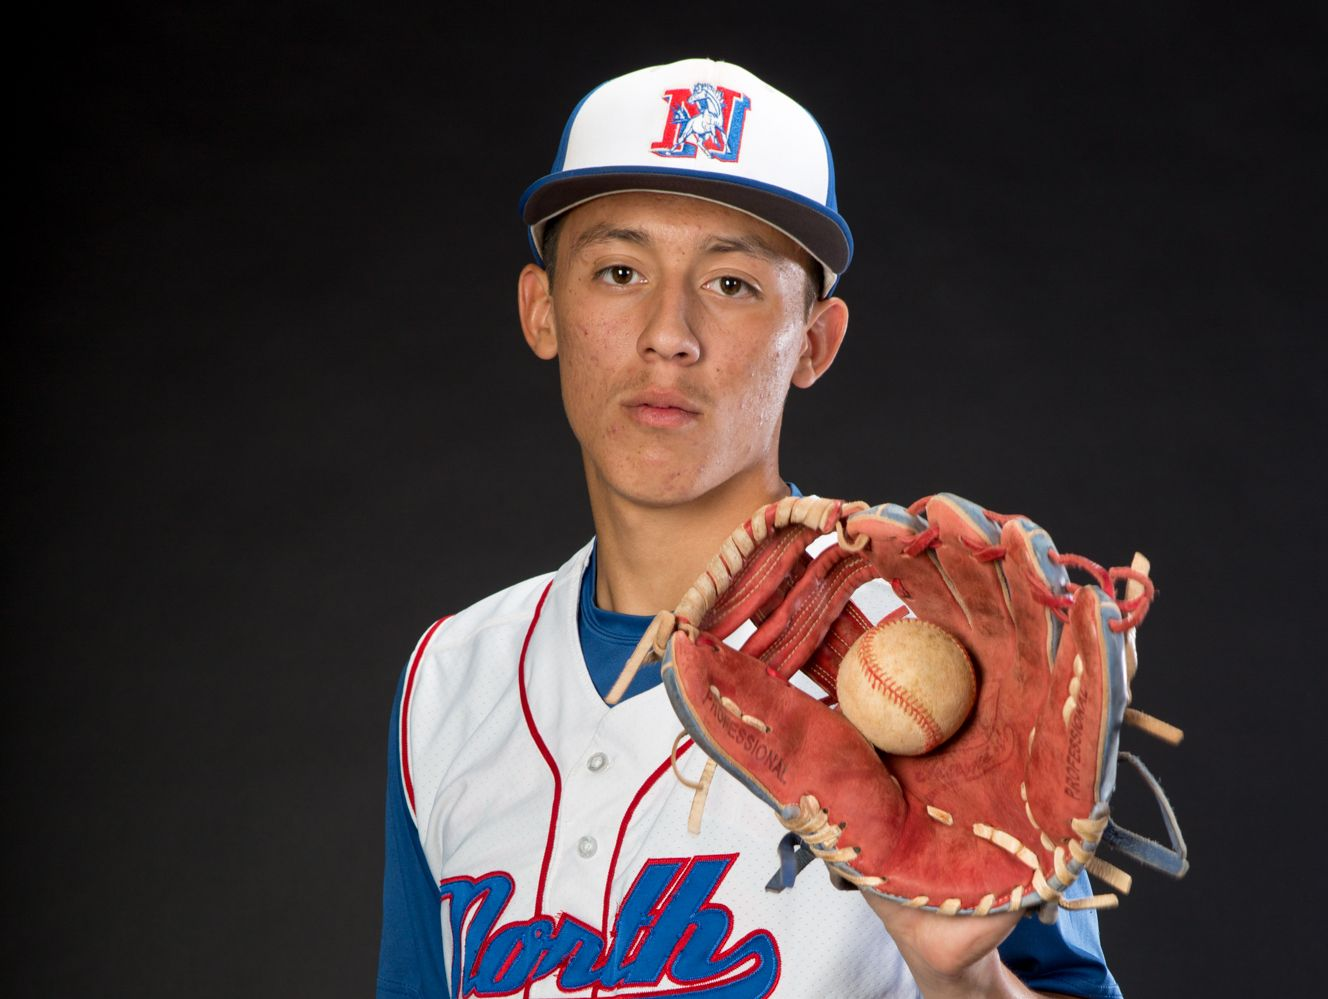 Francisco Valenzuela from Phoenix North, is azcentral sports' Arizona Sports Awards March Athlete of the Month runner-up, presented by La-Z-Boy Furniture Galleries.